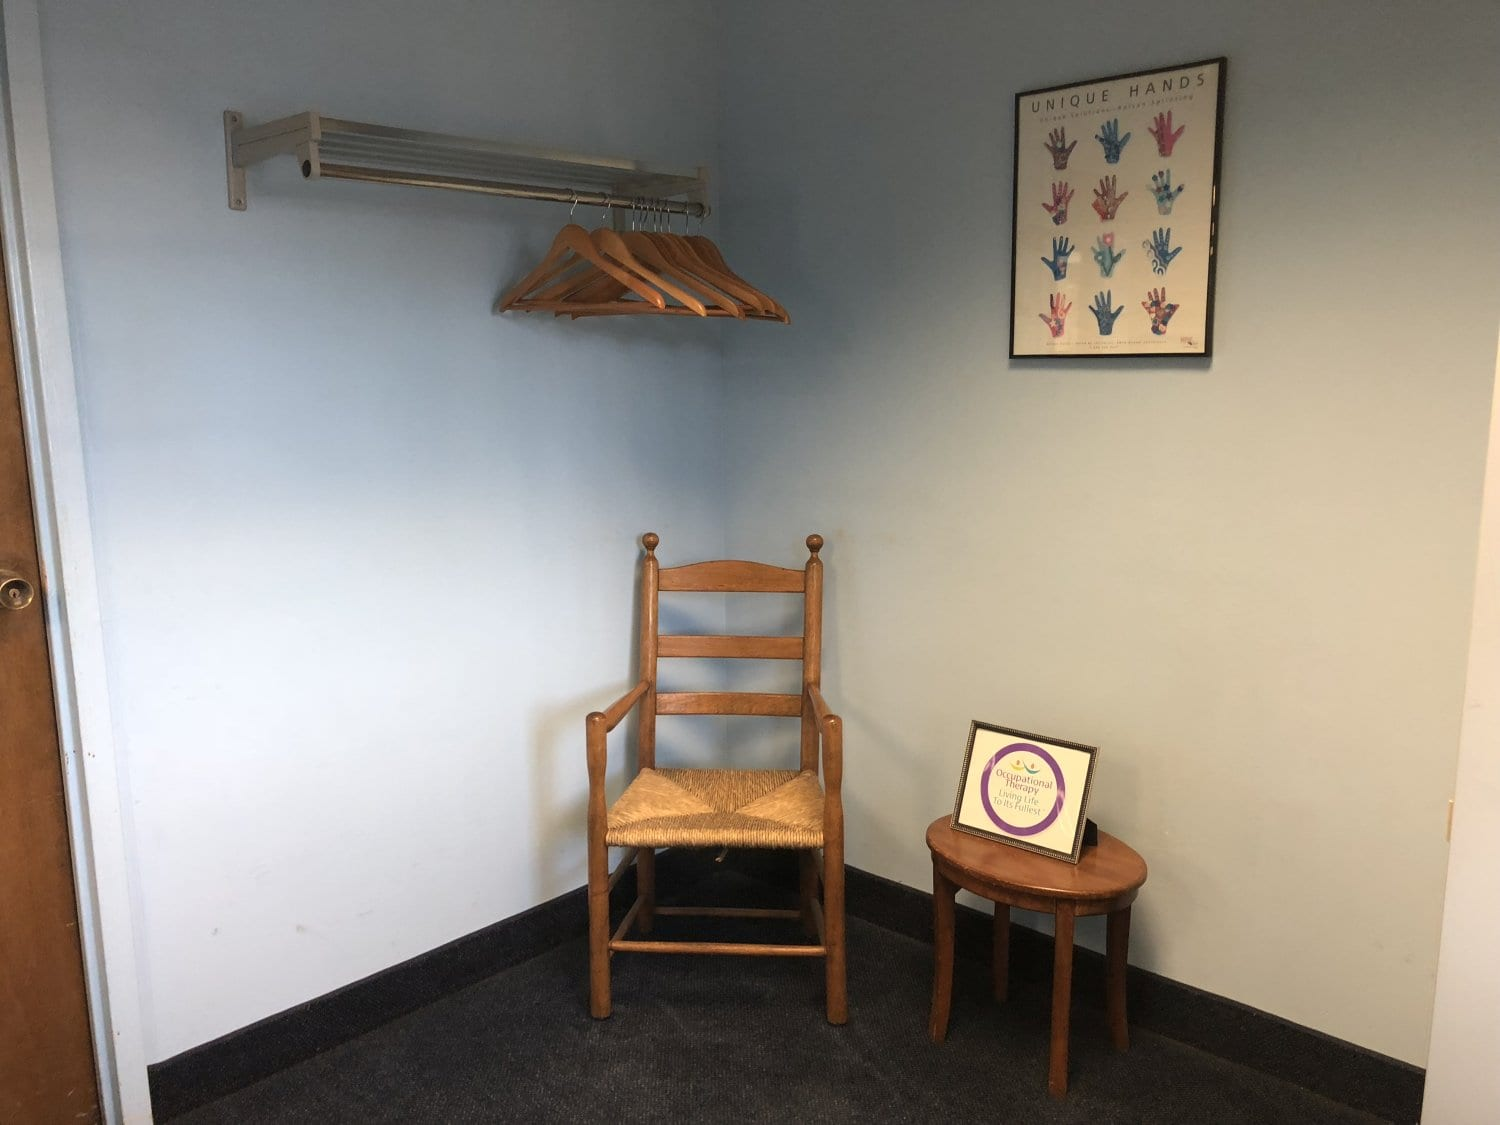 This is a shot of a part of our waiting area at our physical therapy clinic in Union, New Jersey.